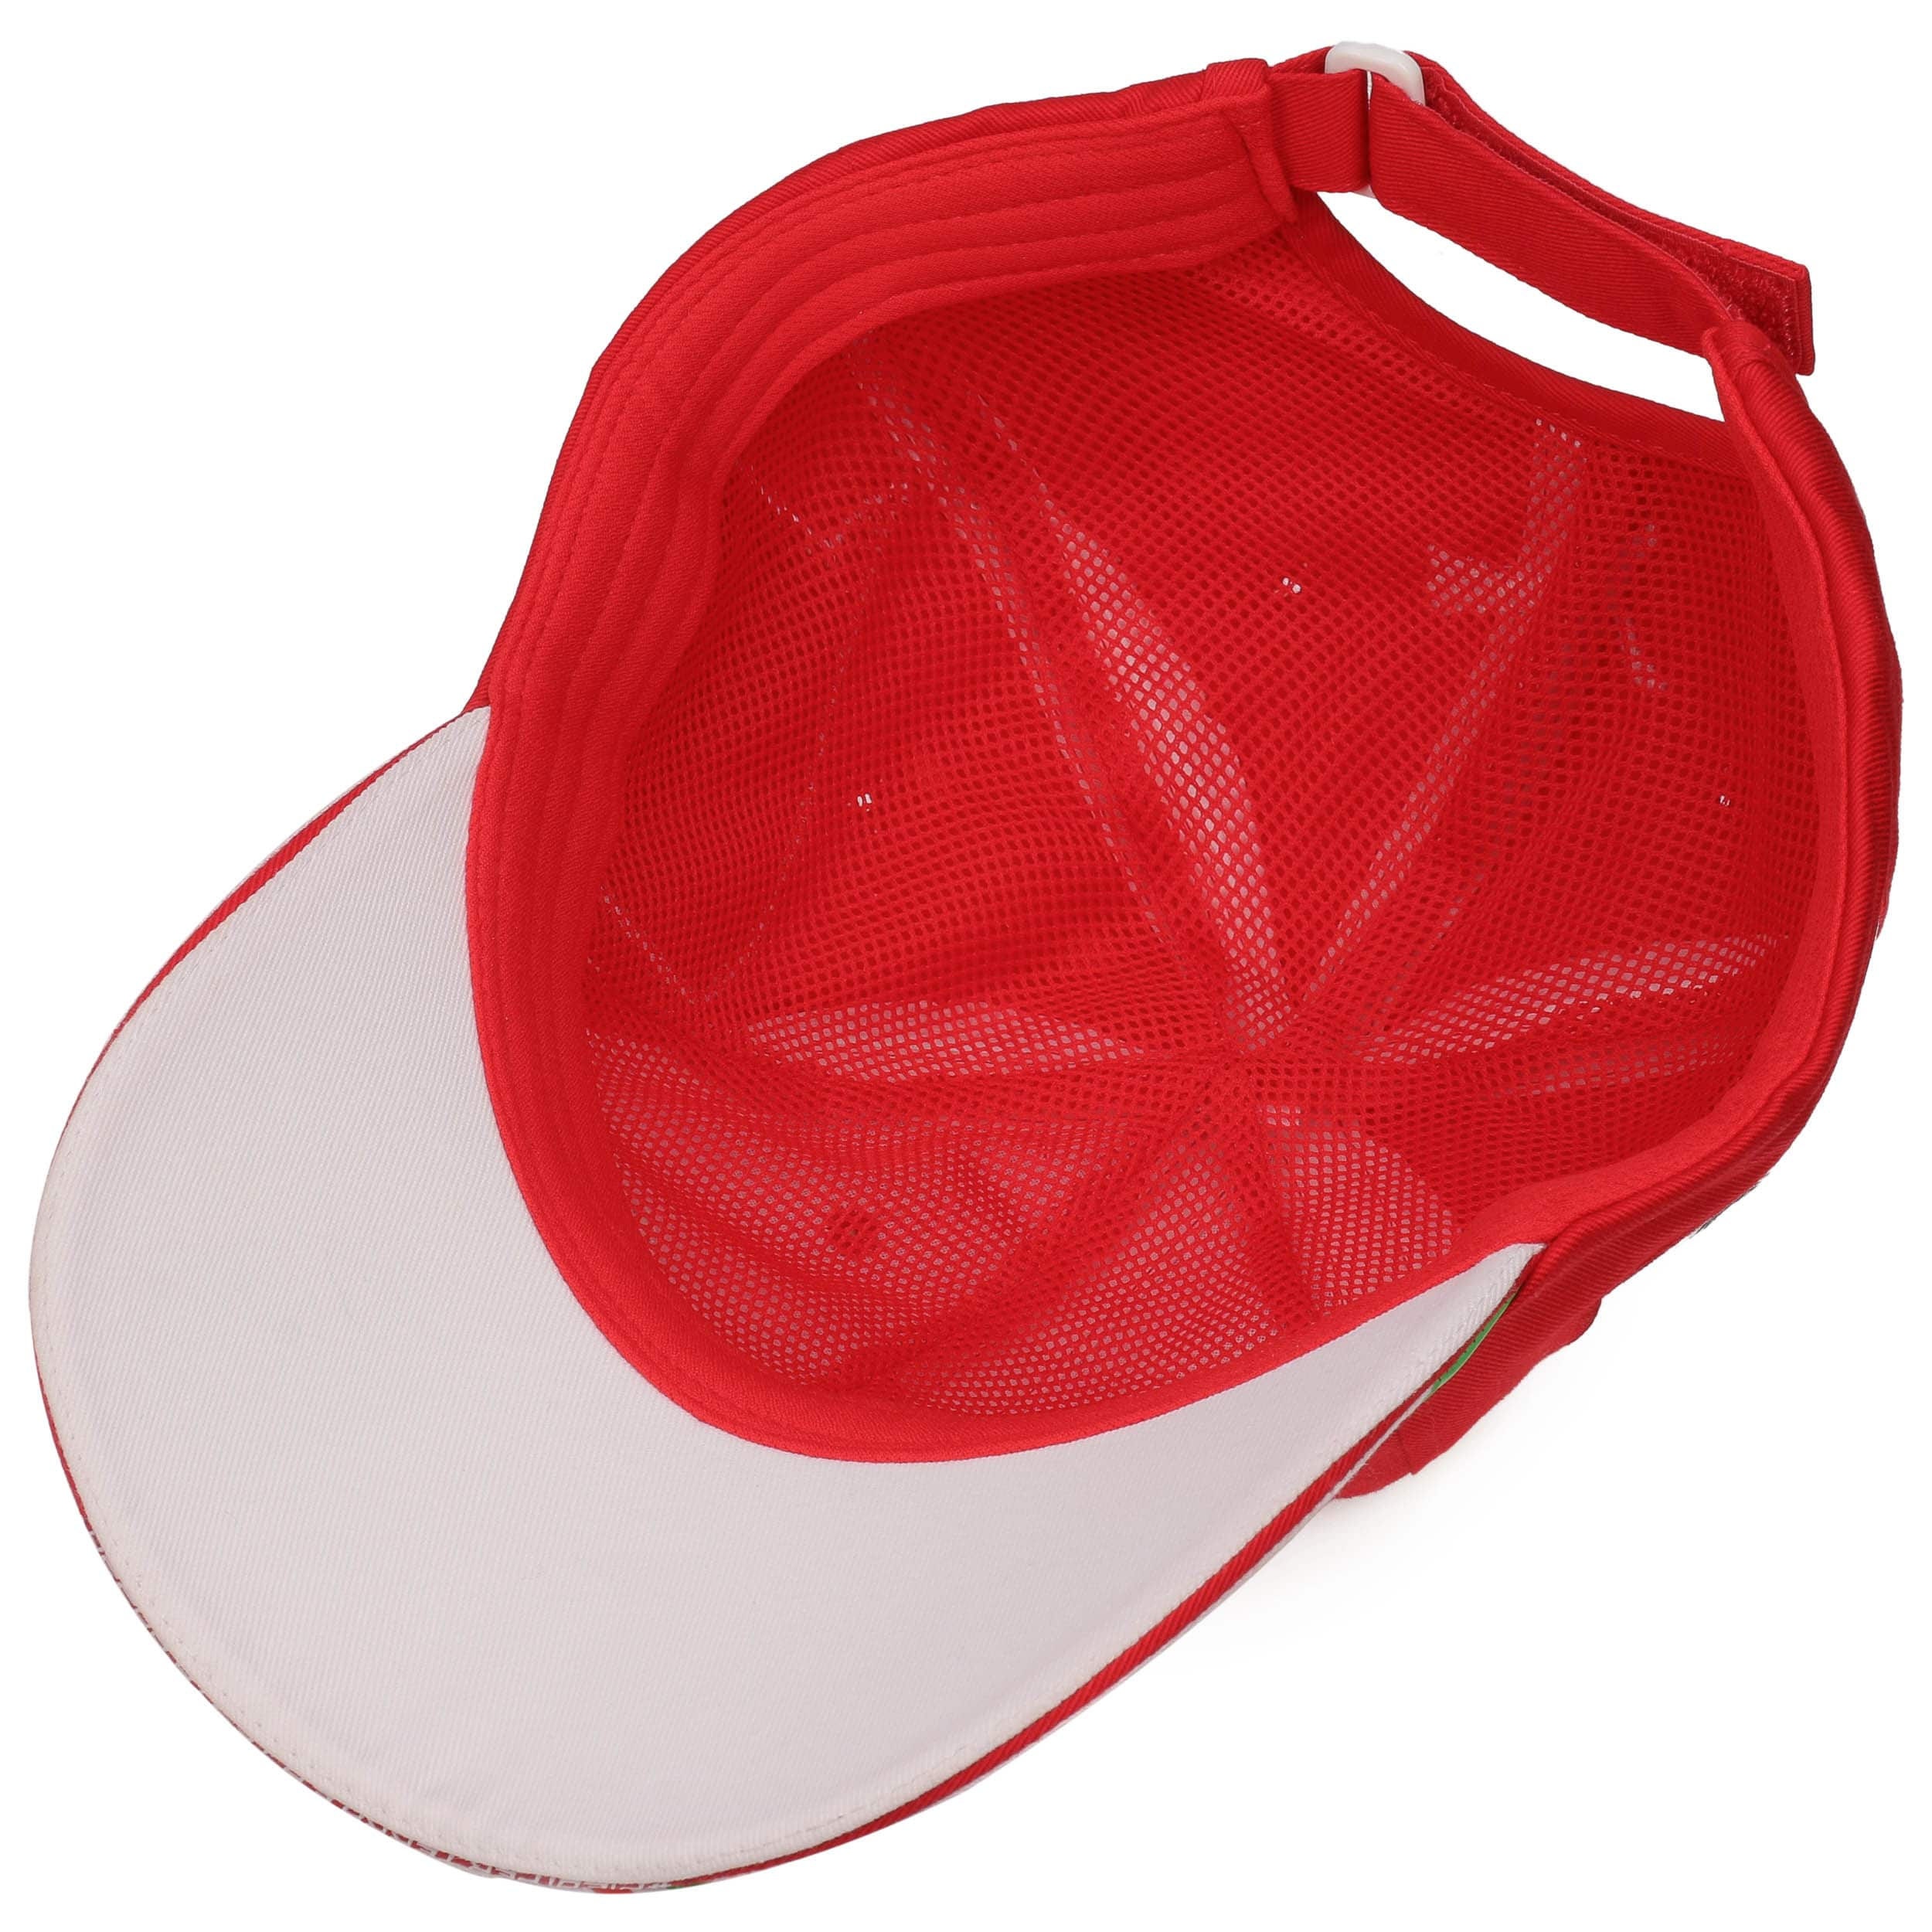 kimi r ikk outdoors sports co cap nen amazon dp uk ferrari